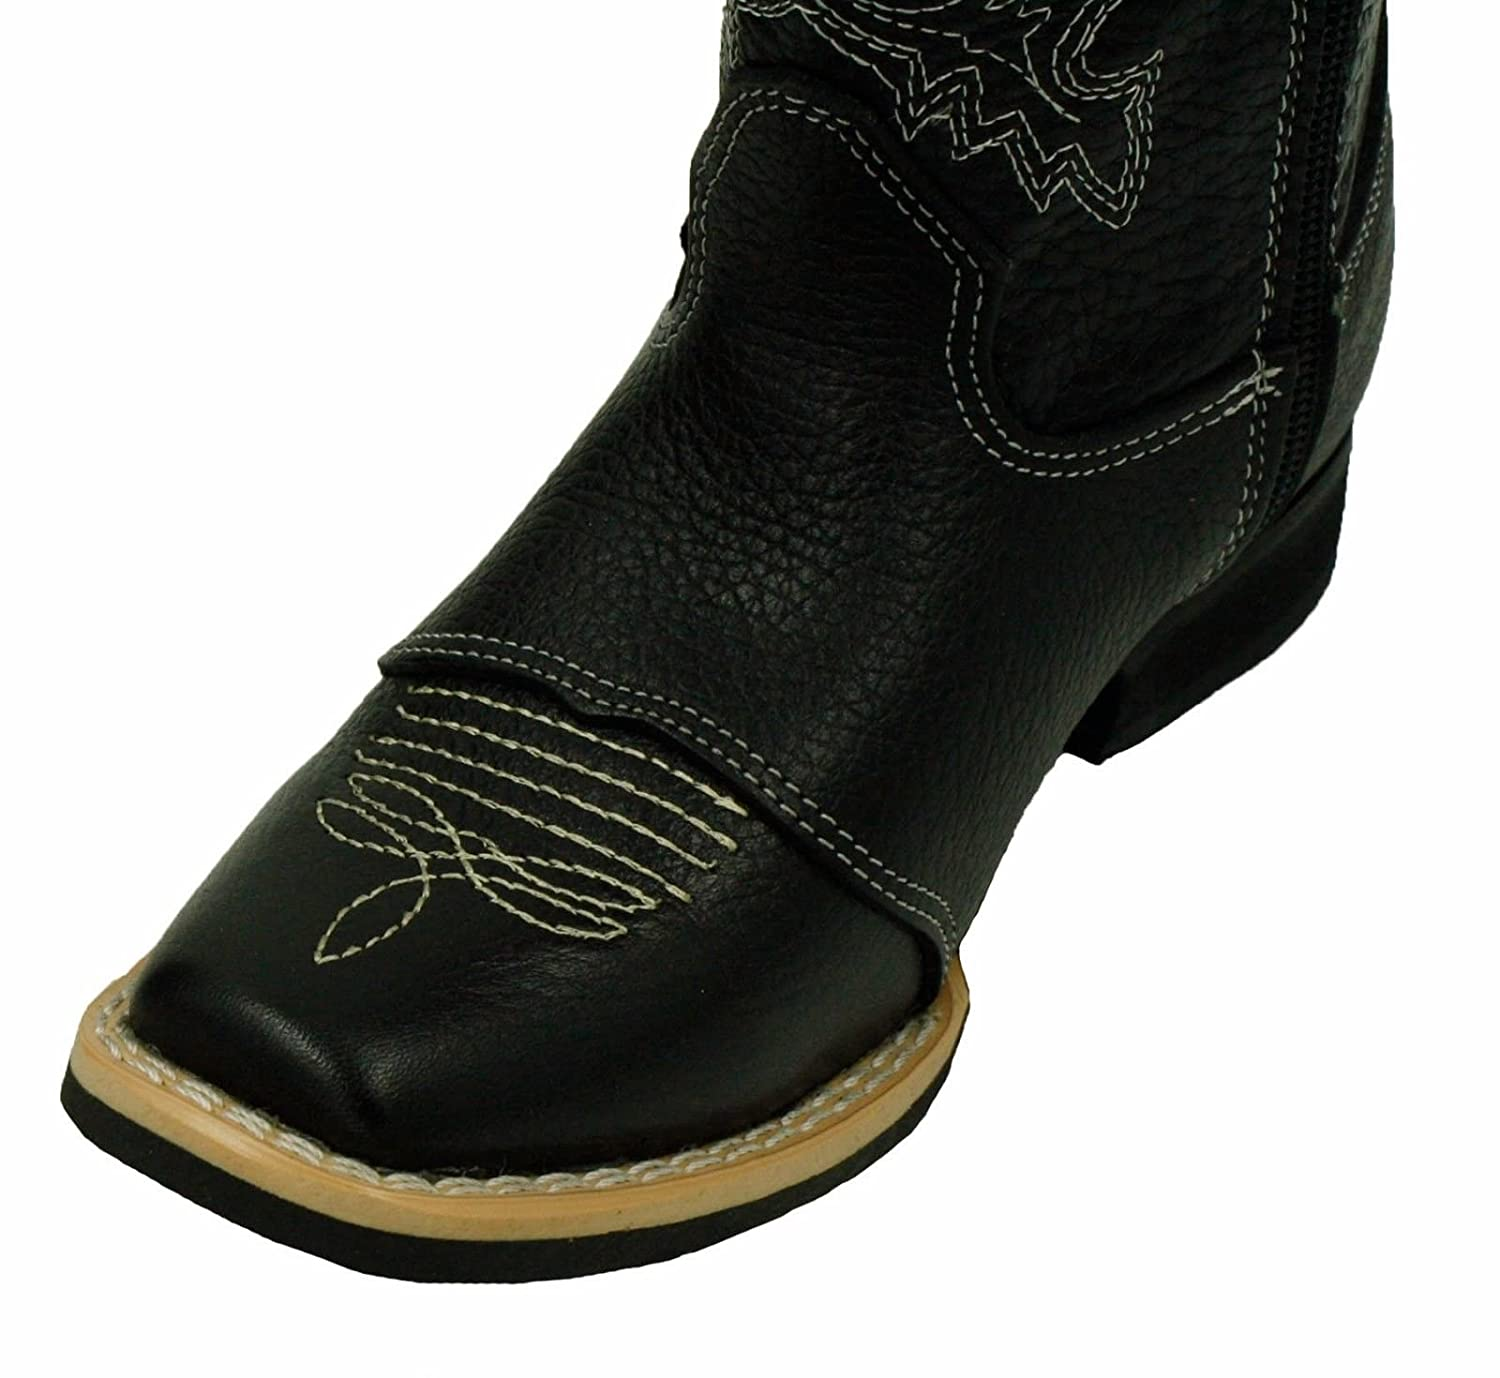 Kids Unisex Genuine Leather Western Rodeo Cowboy Side Zipper Boots Black-10 Toddler Sizes